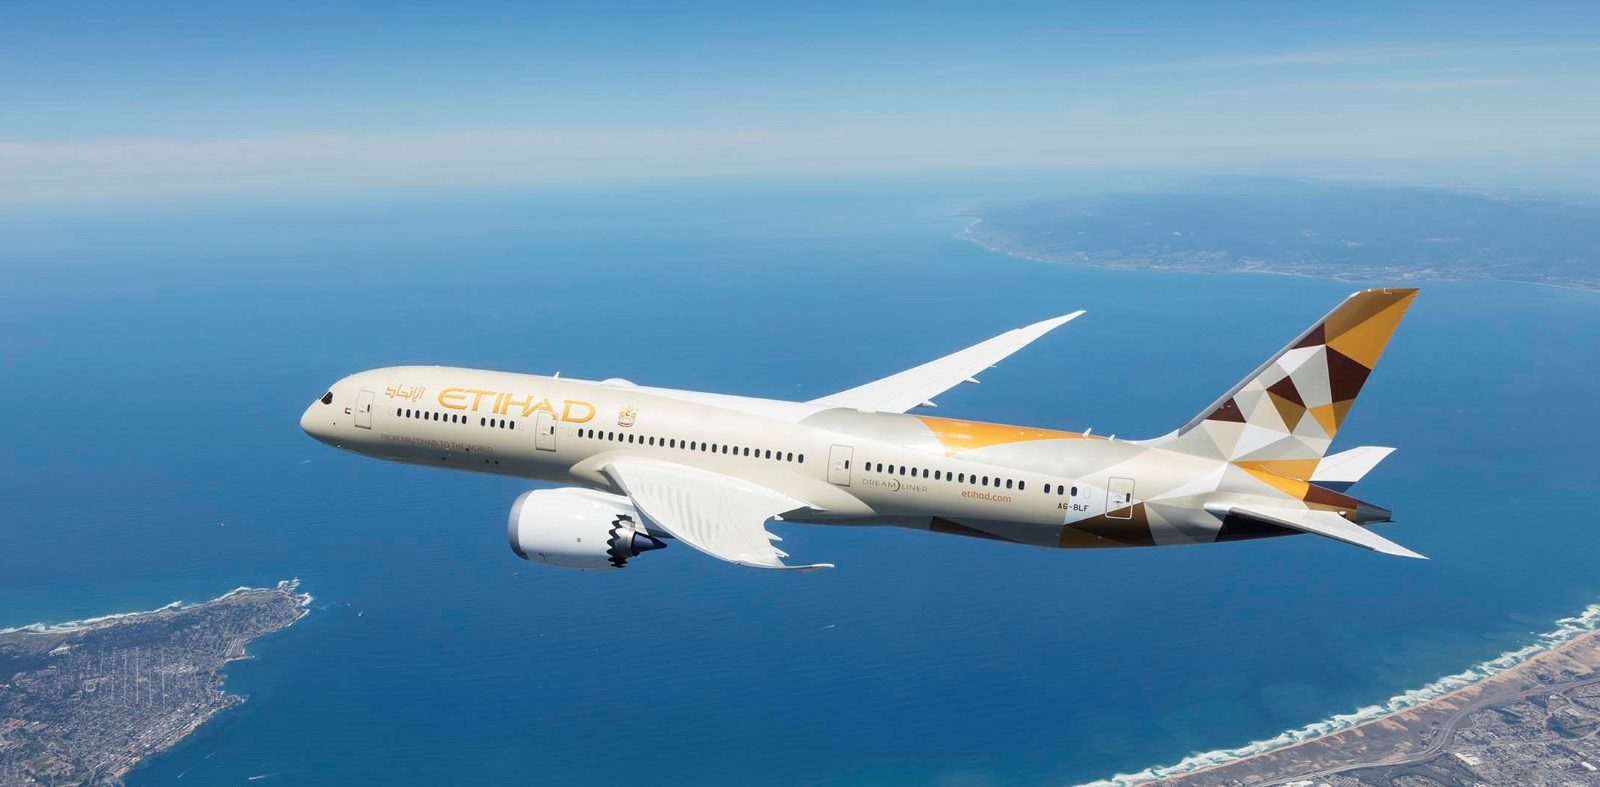 Guide to Etihad Airways & Etihad Guest (2021)